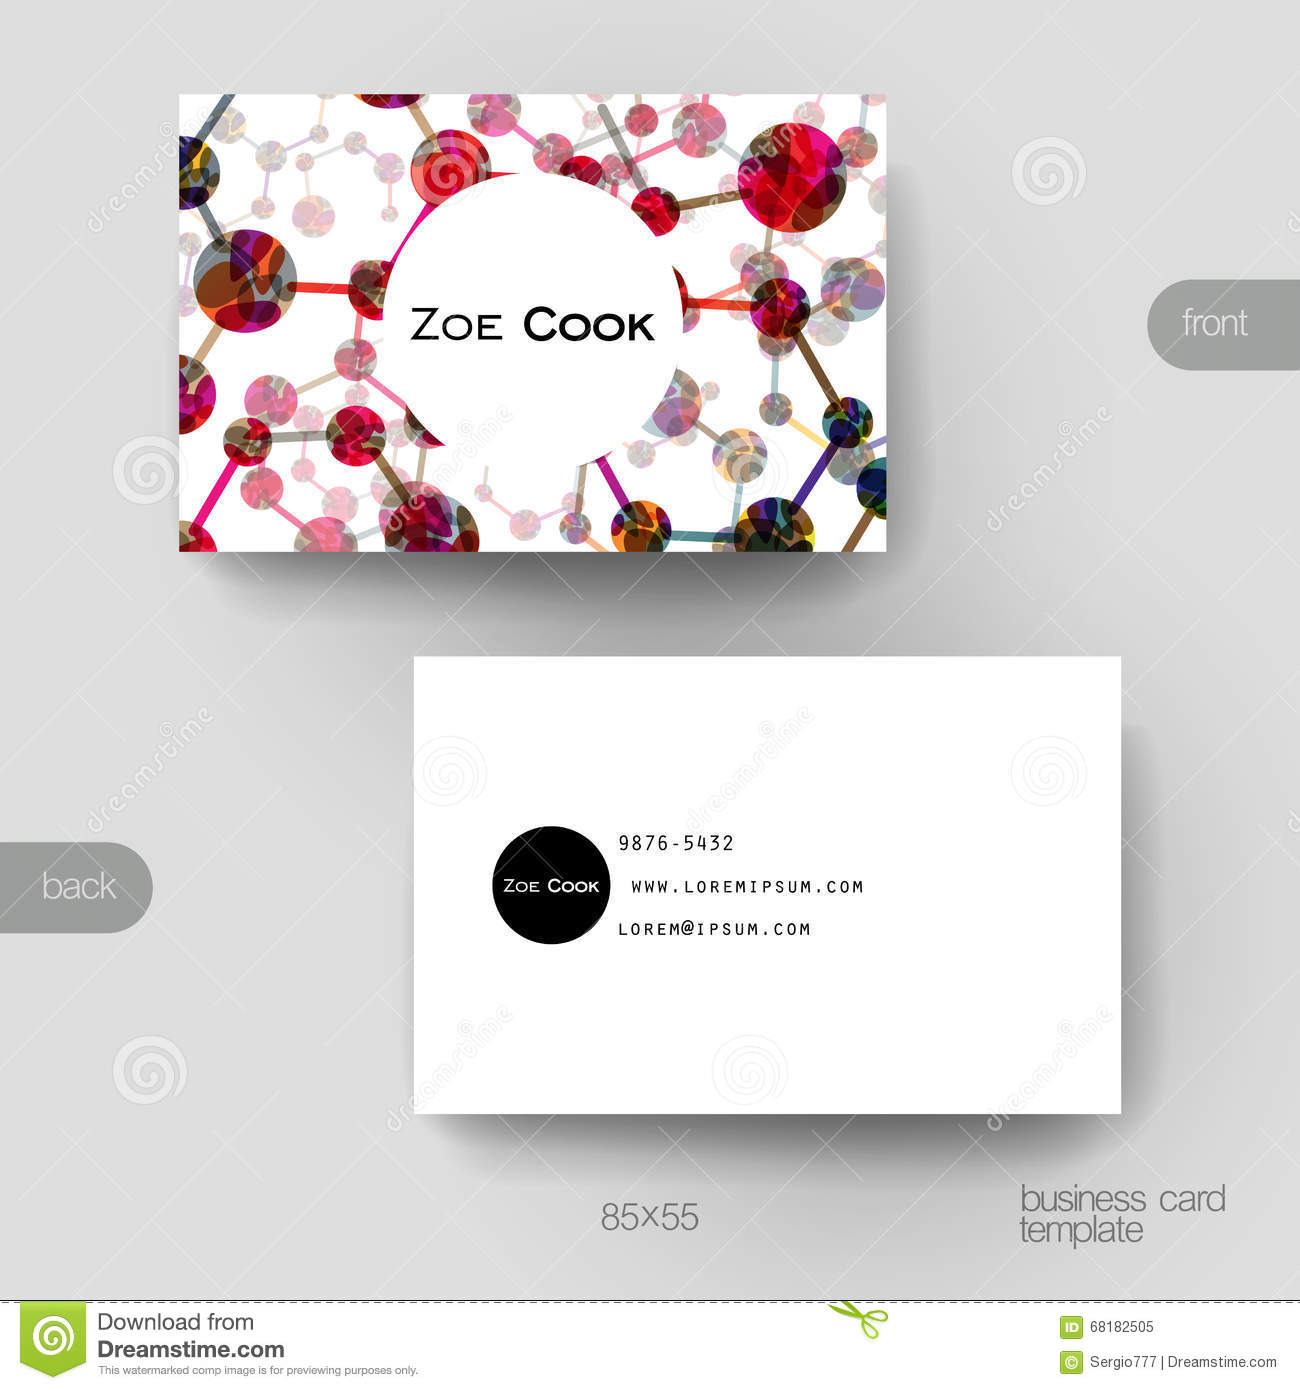 Business card vector template with dna molecule background stock royalty free vector download business card vector template with dna molecule background stock vector reheart Image collections